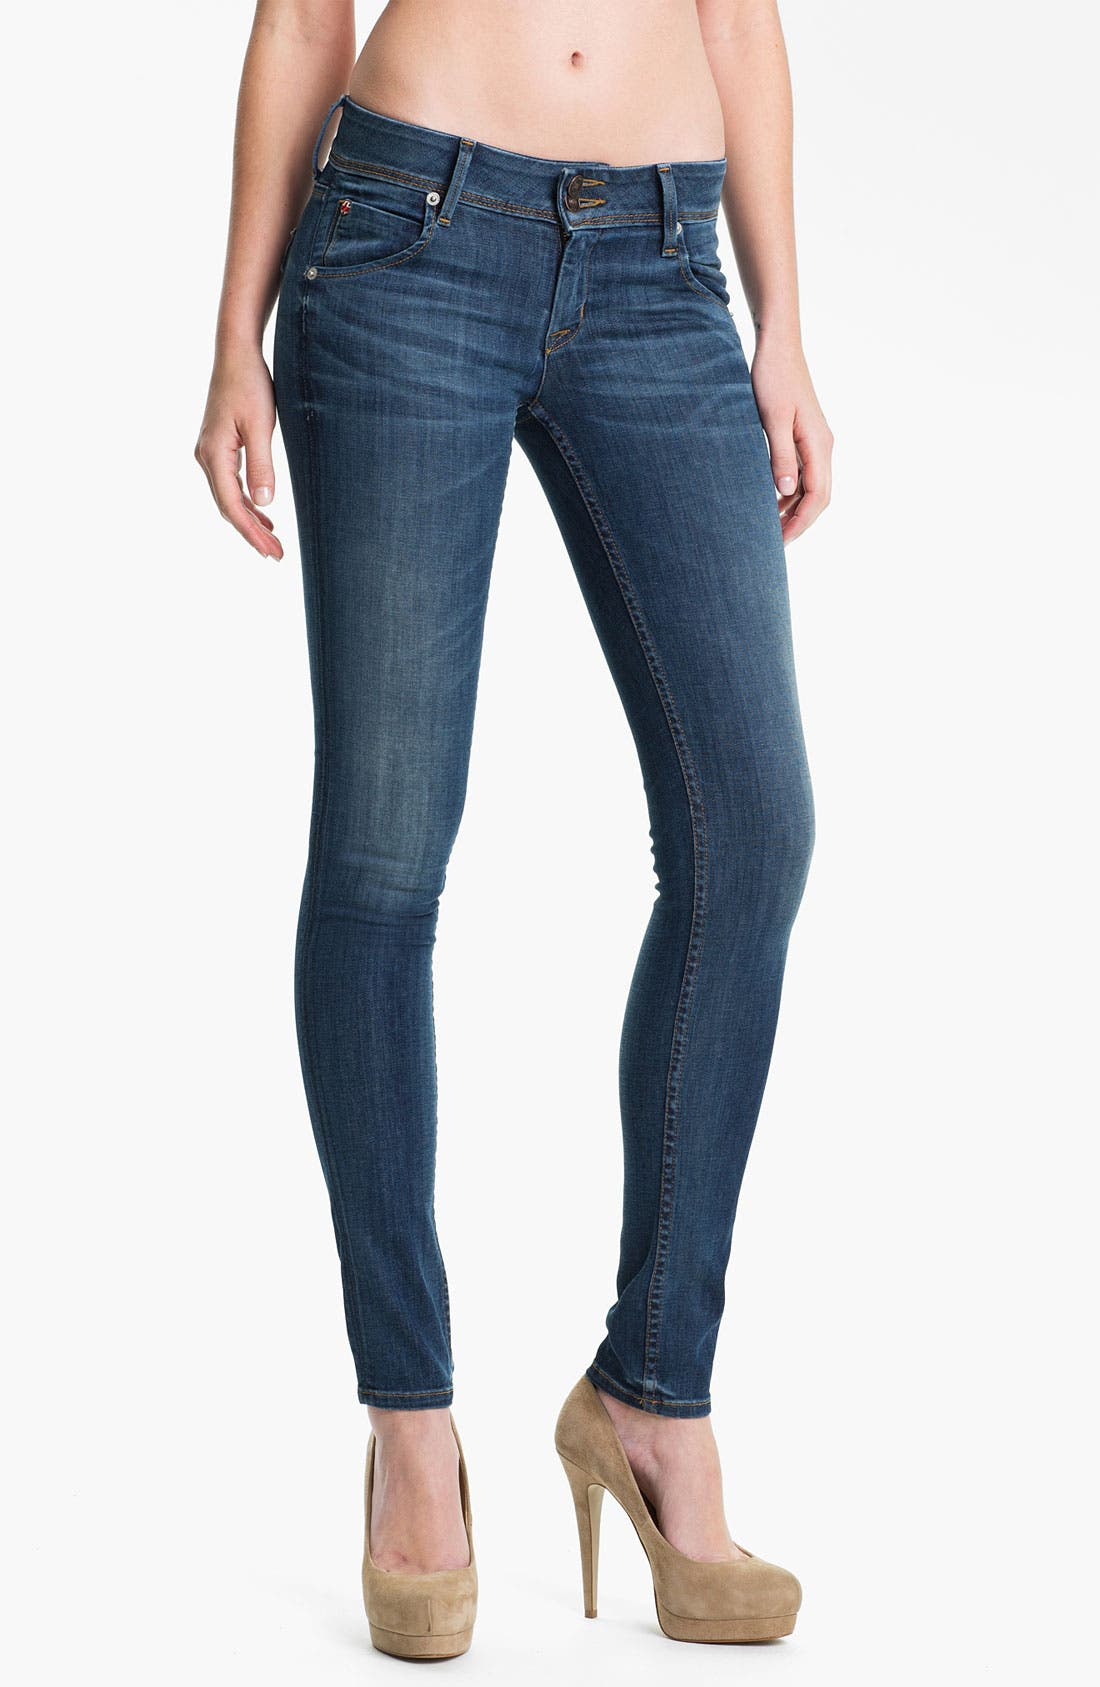 Alternate Image 1 Selected - Hudson Jeans 'Collin' Skinny Jeans (Stella)